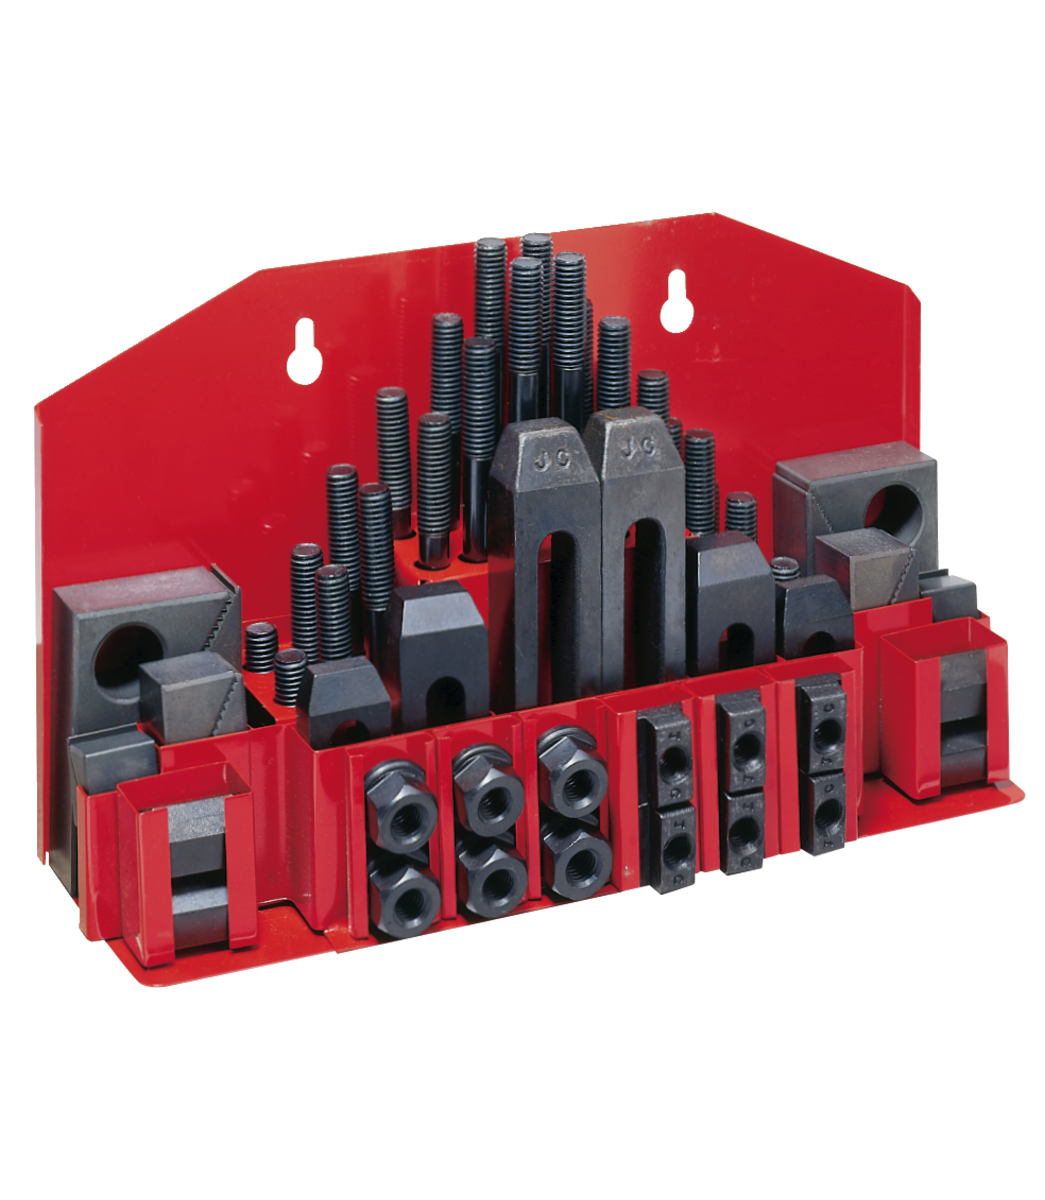 "CK-38, 58-Piece Clamping Kit with Tray for 5/8"" T-Slot"